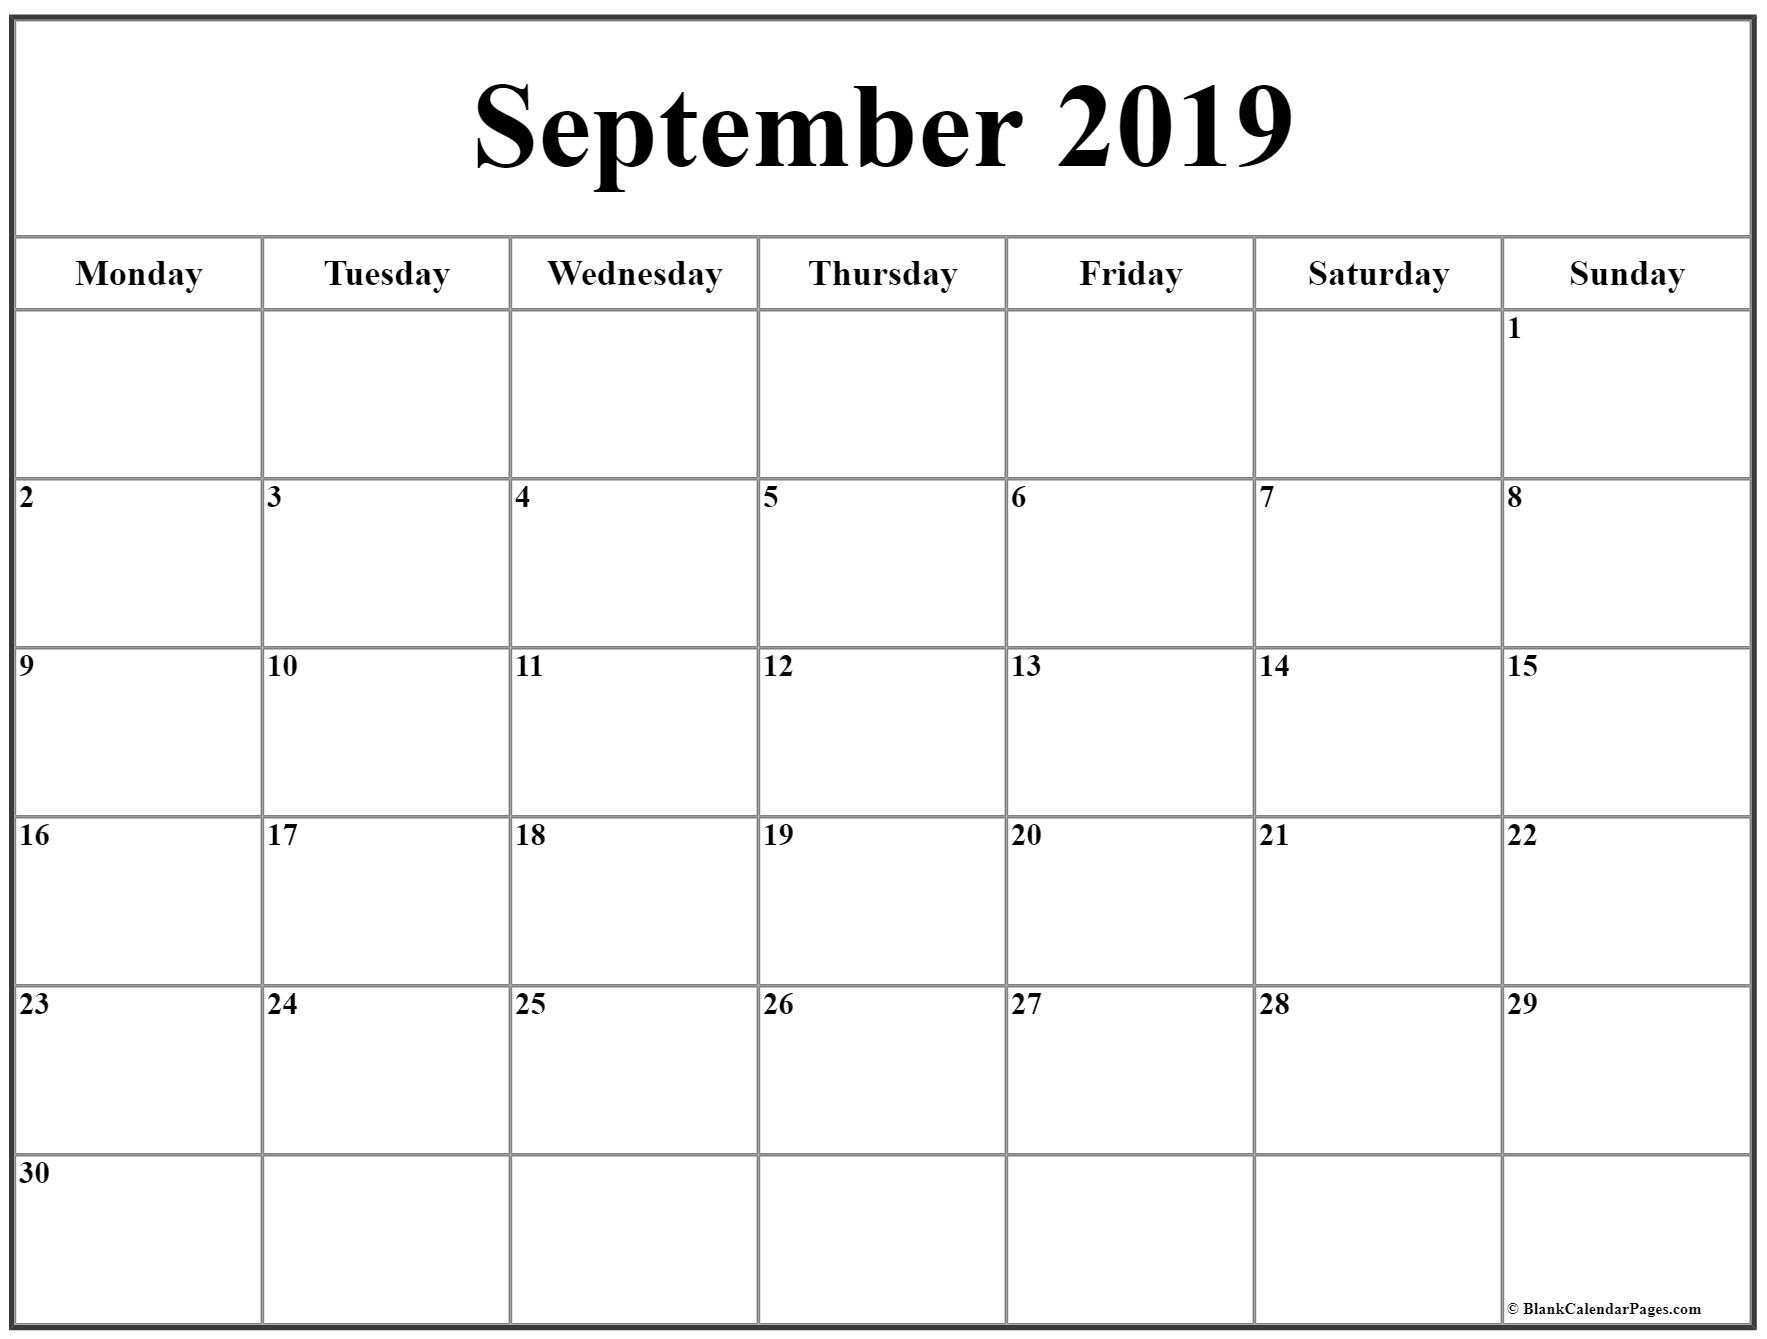 September 2019 Monday Calendar | Monday To Sunday in Calendar Monday Through Friday